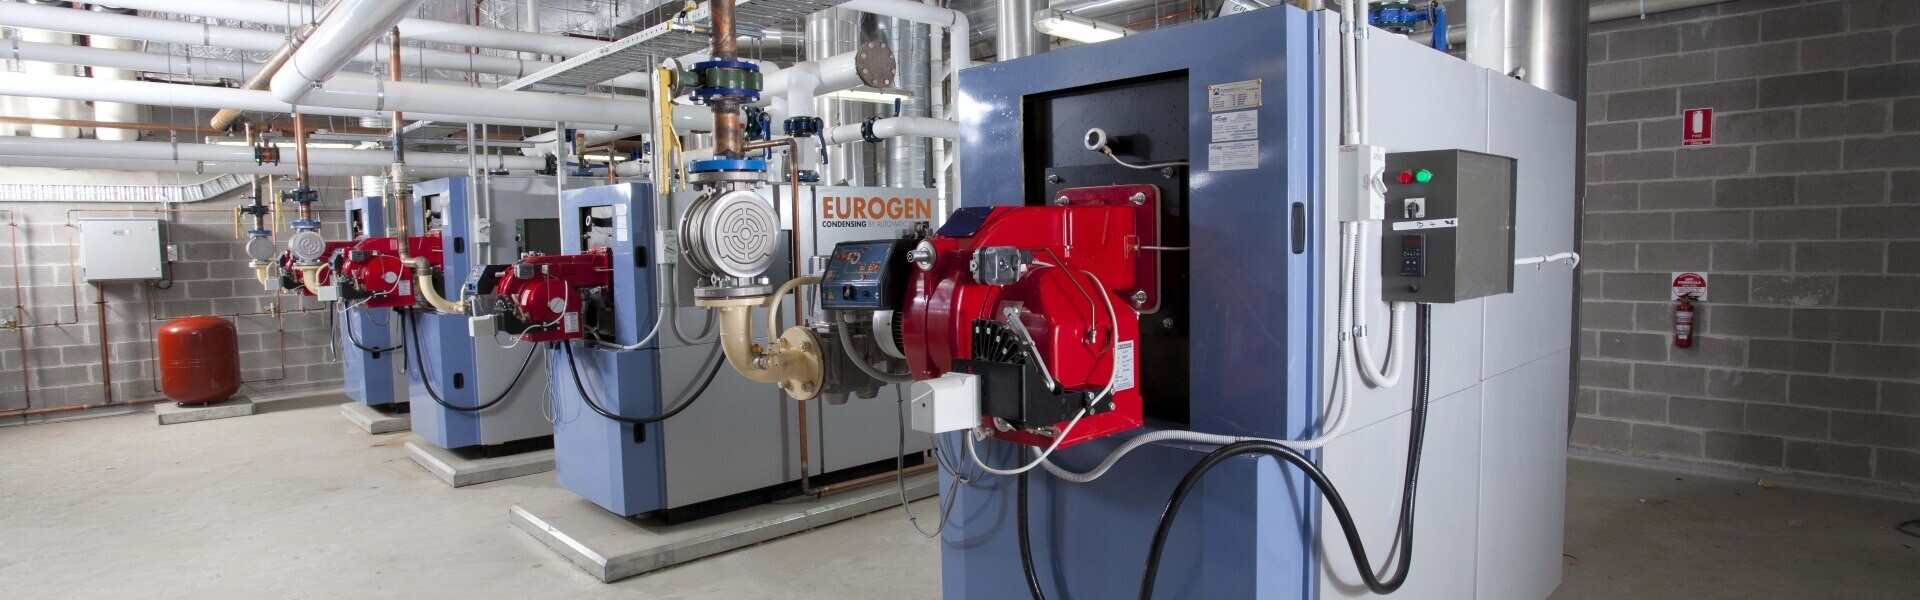 Eurogen Condensing Hot Water Heaters